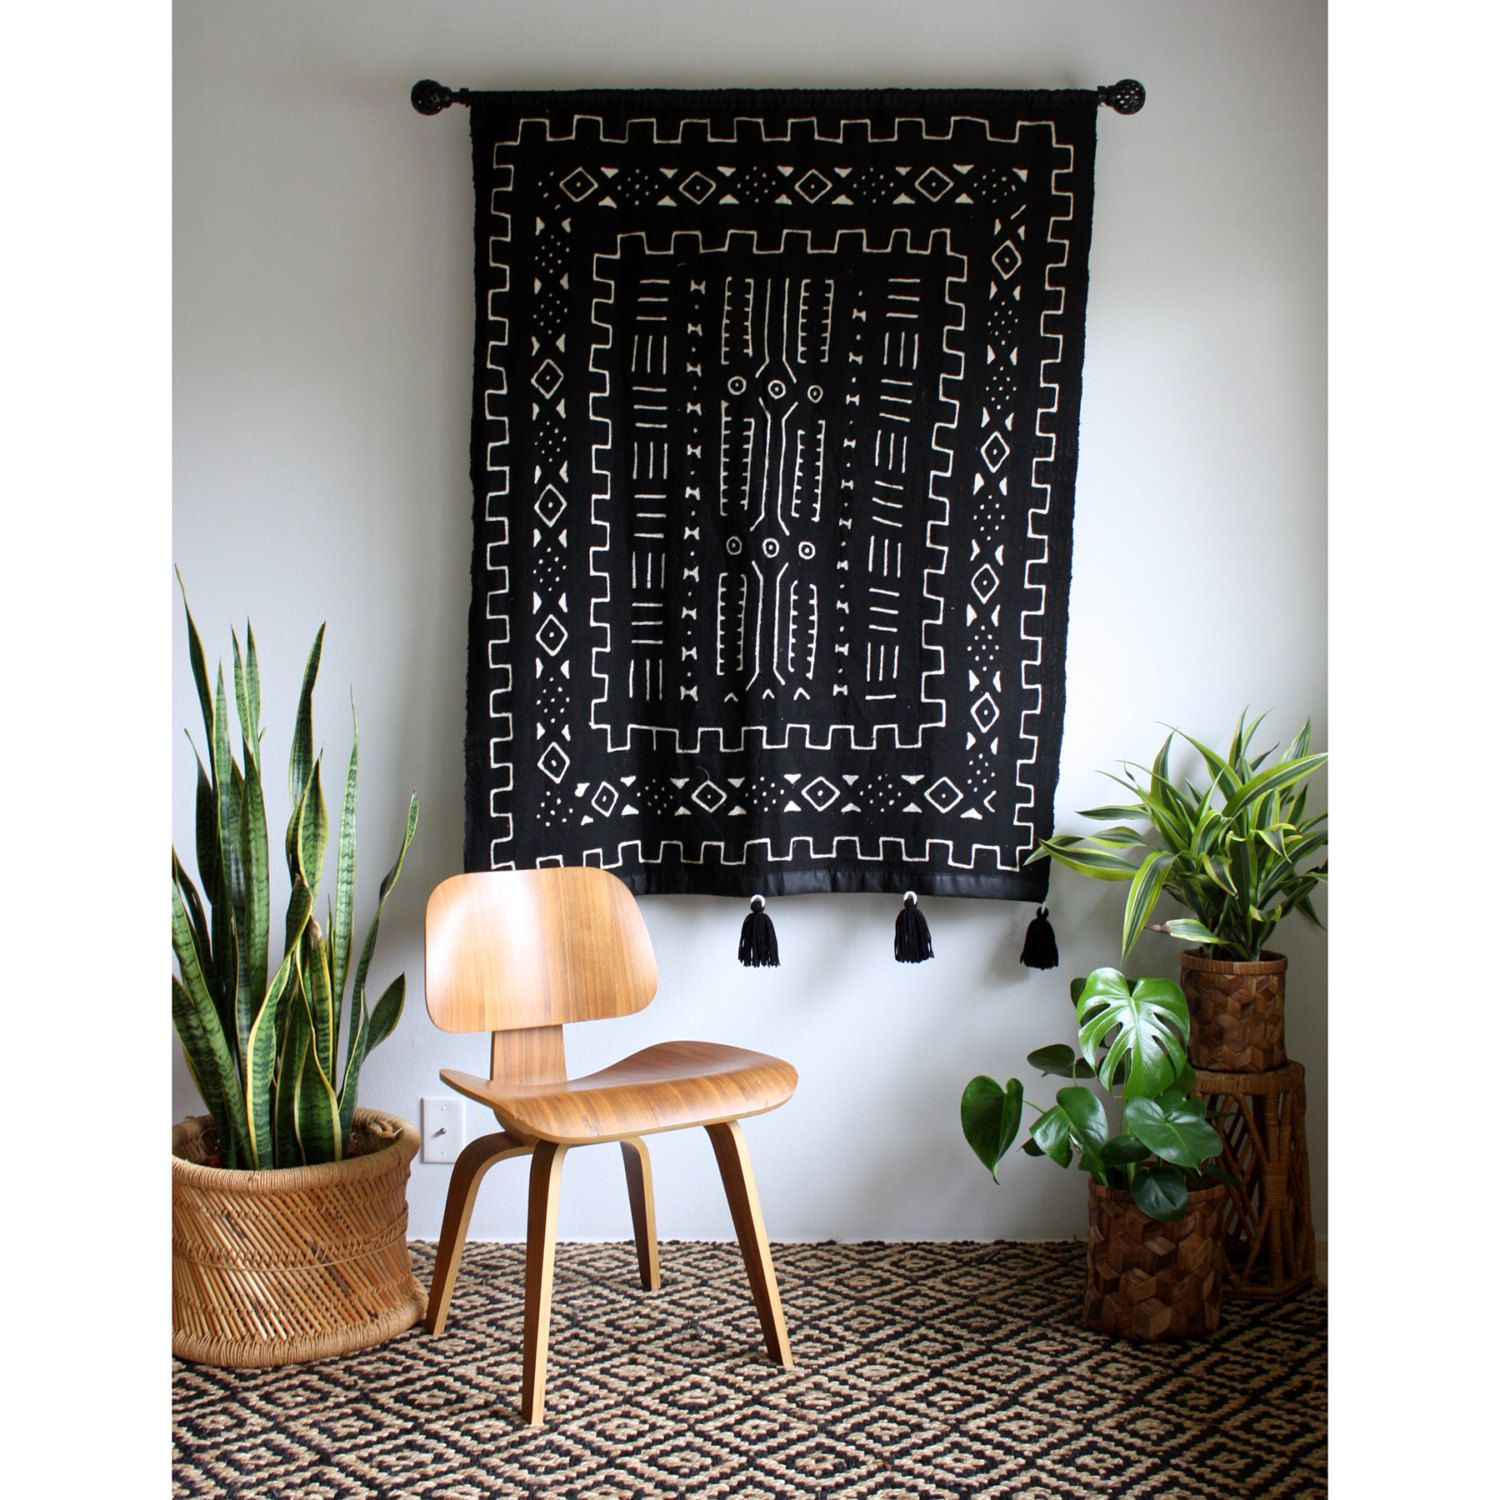 Black Mudcloth Tapestry Mud Cloth Wall Hanging African Mudcloth Pom Pom  Blanket Mudcloth Throw Tassel Tapestry Bohemian Home Decor USD) By ... Part 88